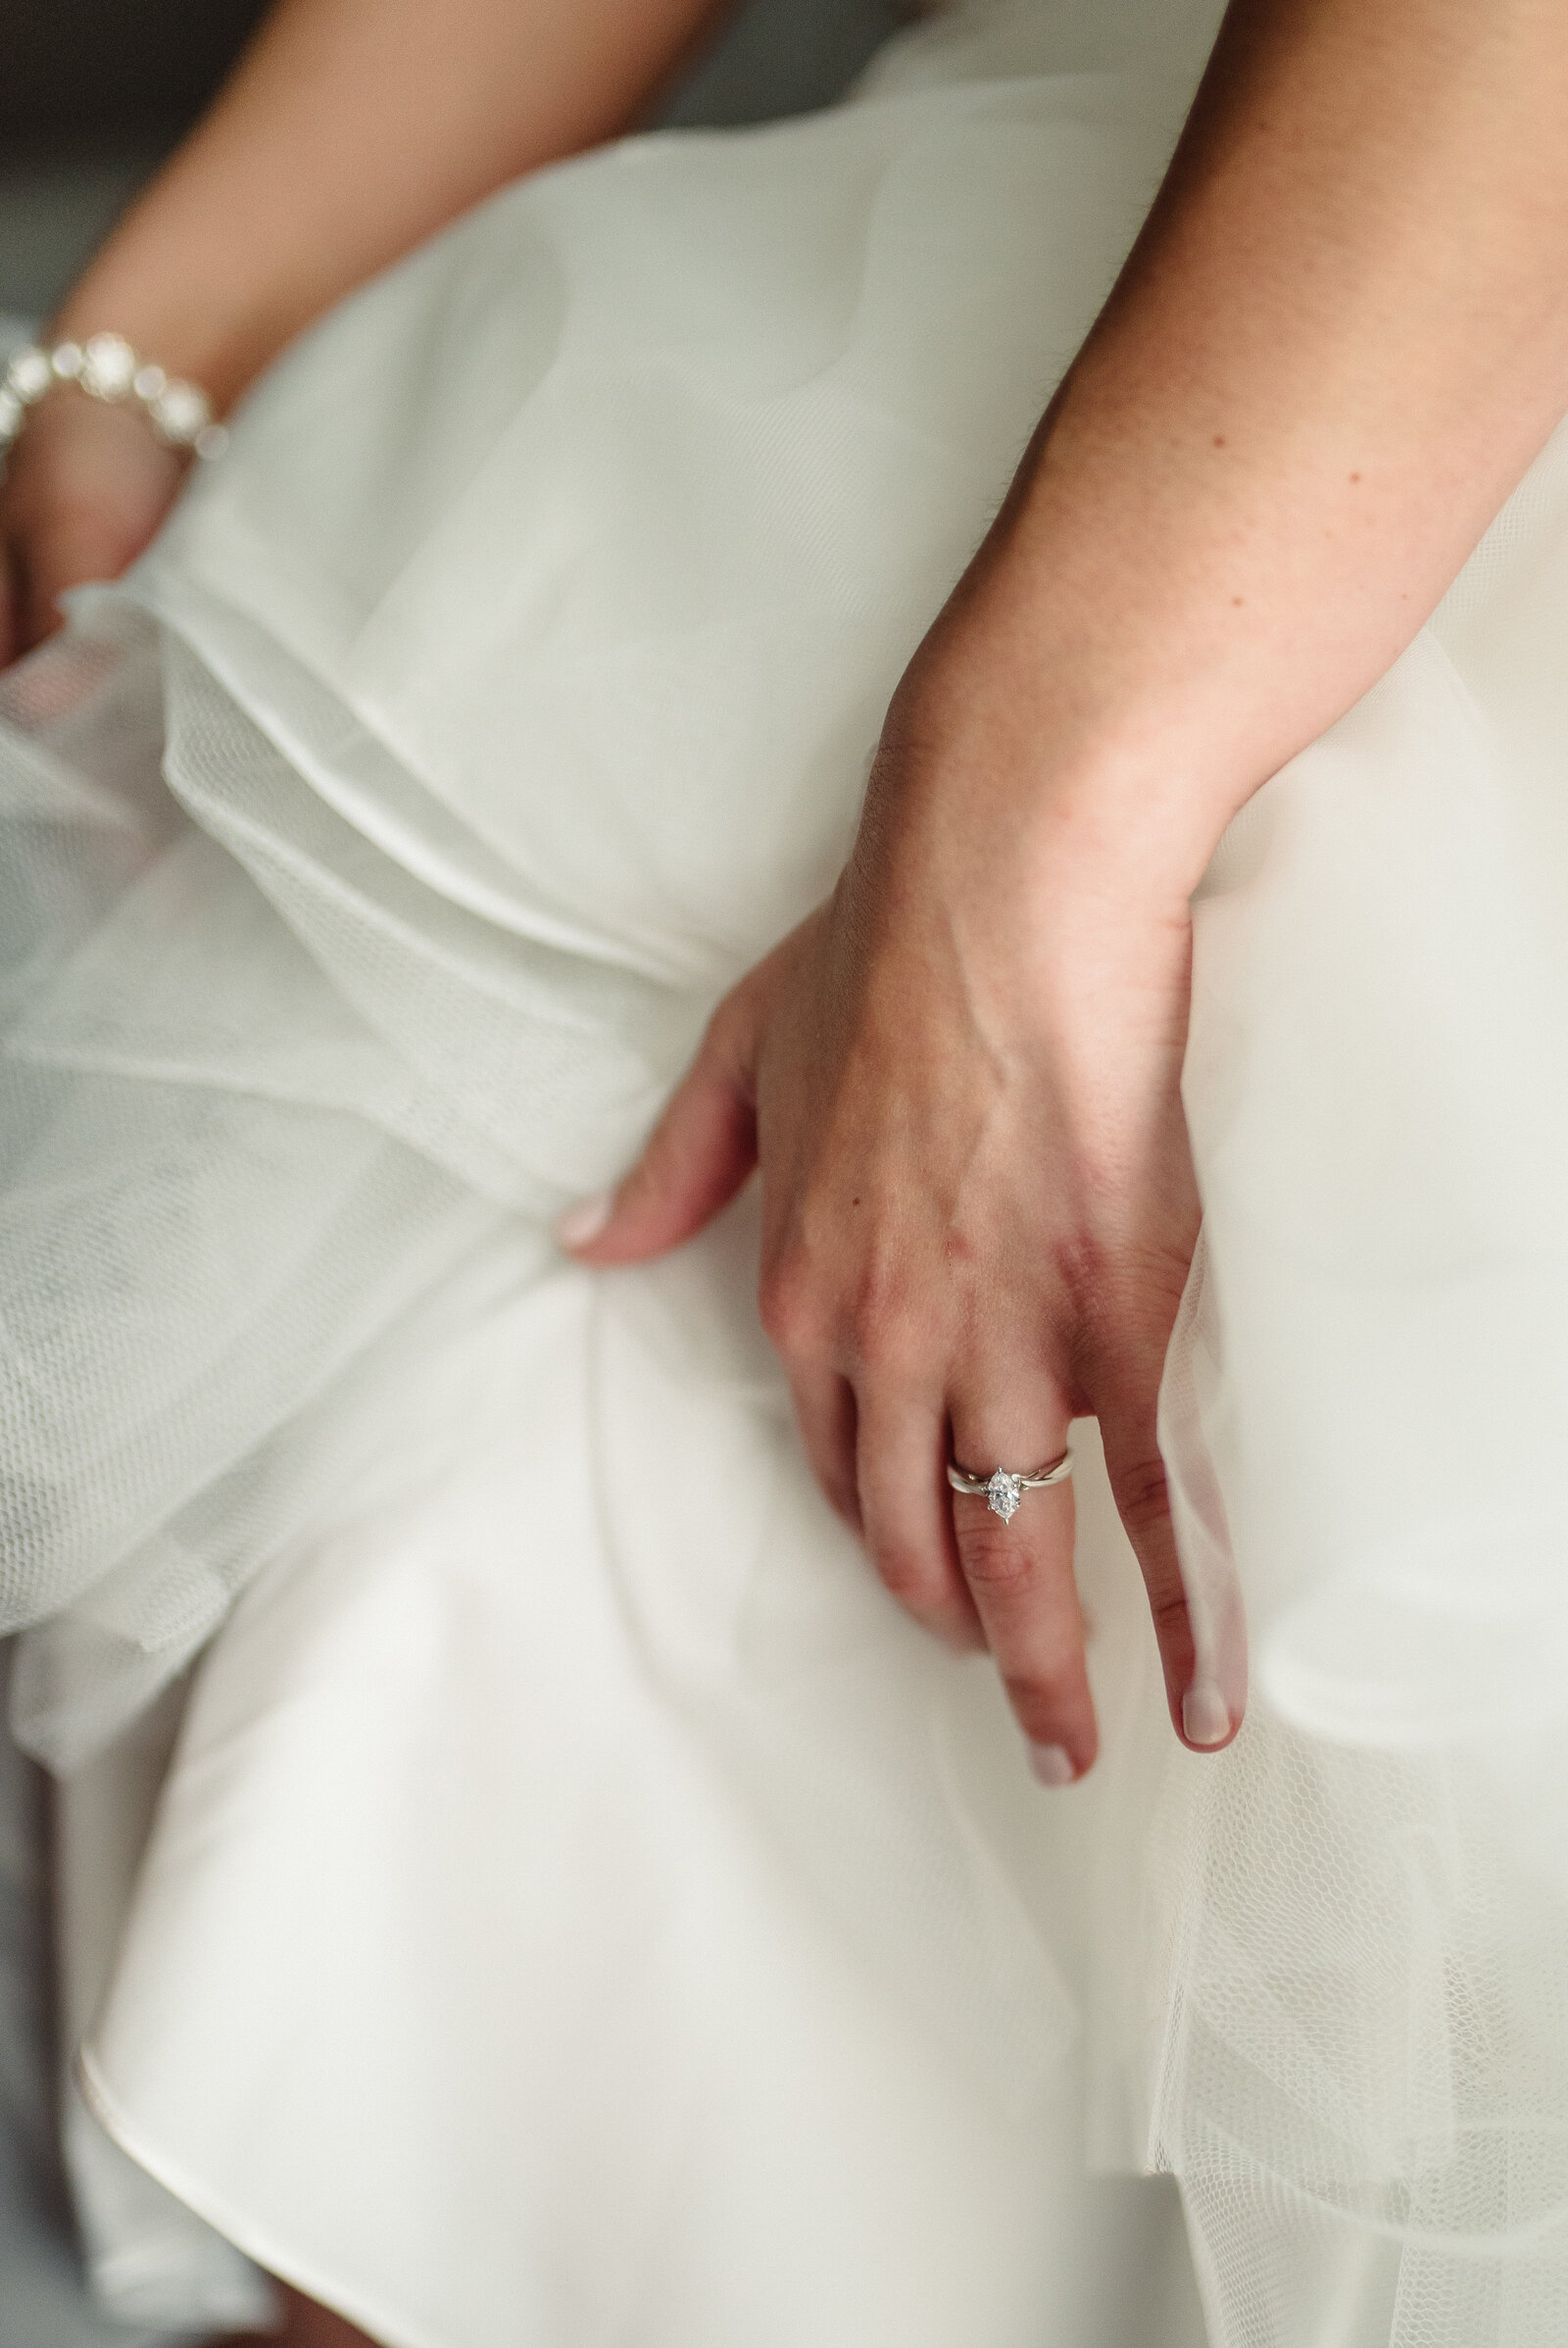 kansas-city-wedding-photographer-kyann-and-mat-photography-43